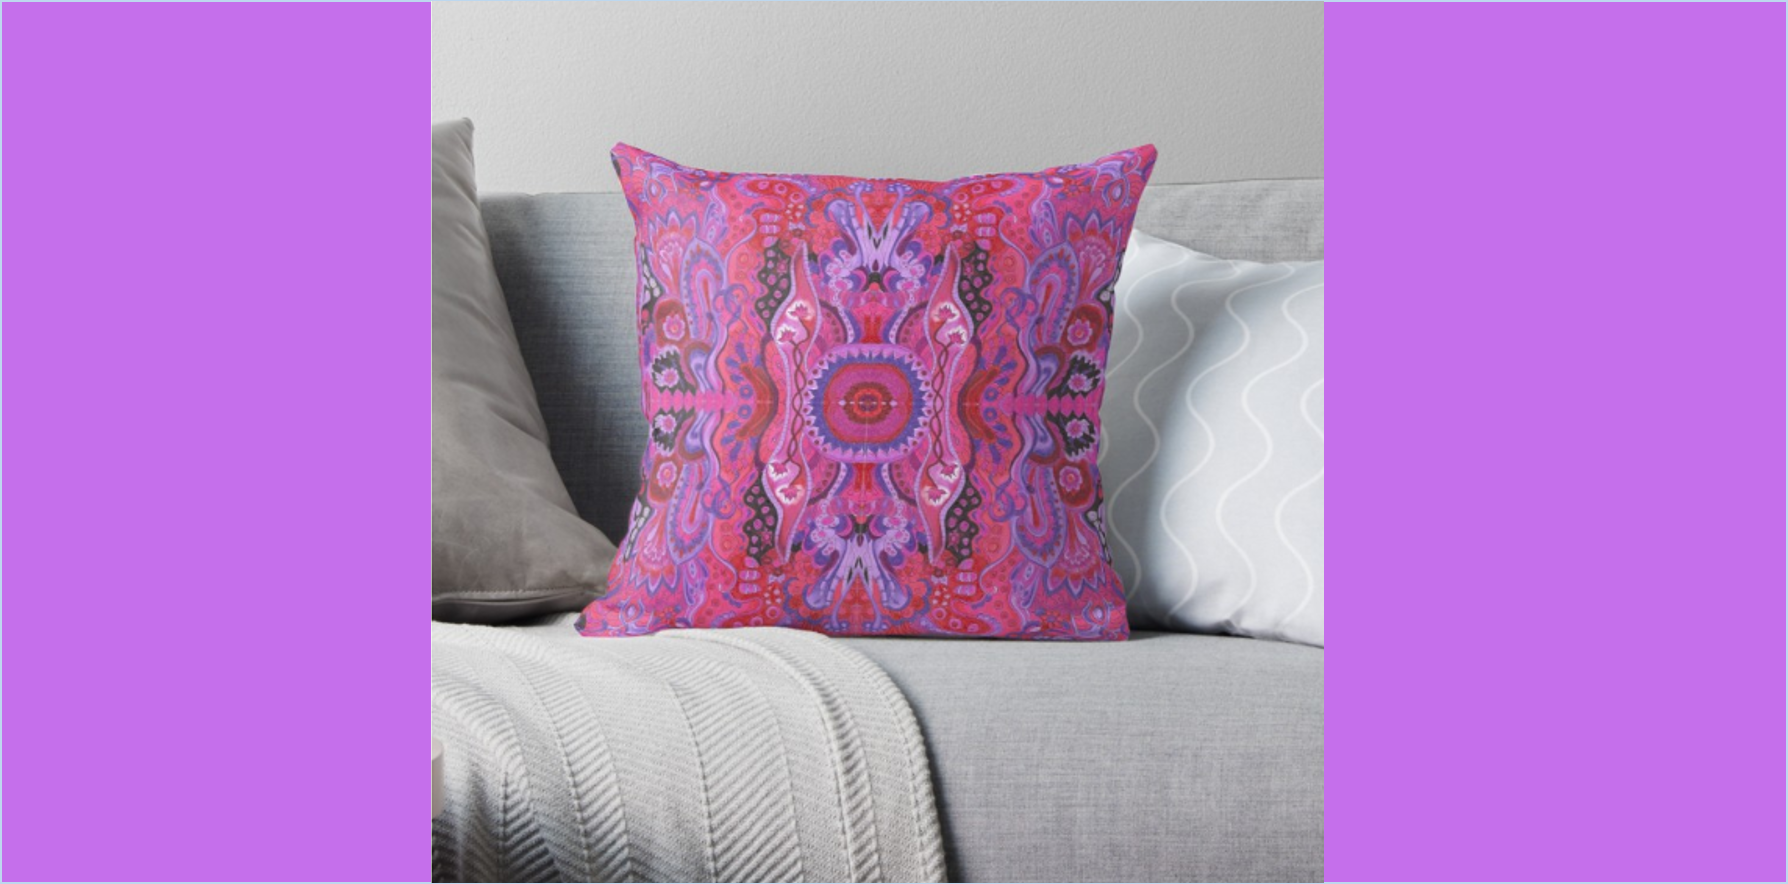 Meditation cushion cyclamen abstract